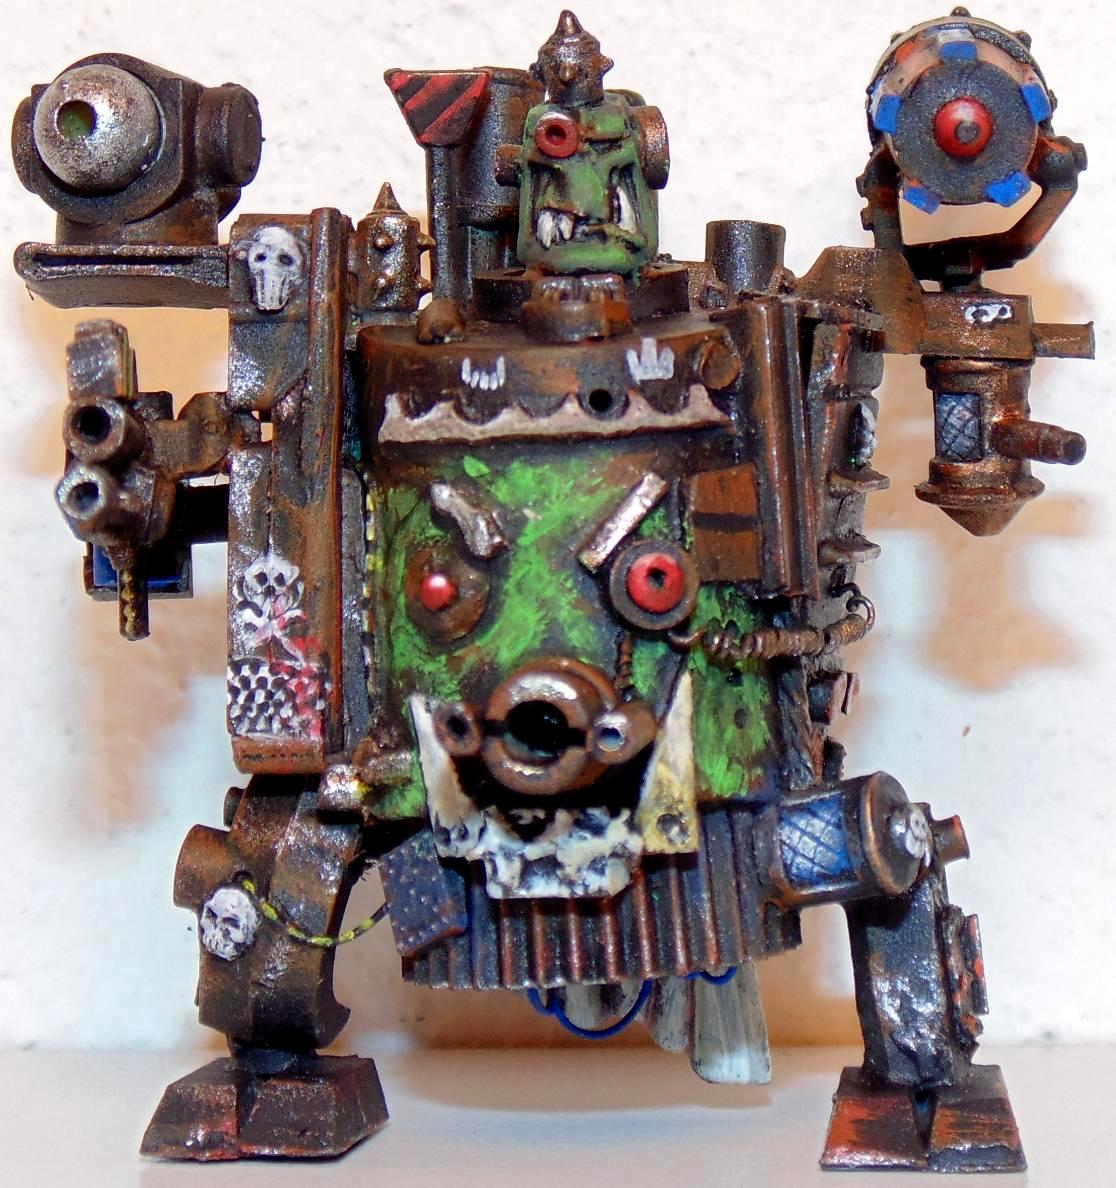 Army, Conversion, Epic, Gargant, Green, Mob, Nob, Orks, Scratch, Scratch Build, Stampfa, Stompa, Superstompa, Waaagh, Warhammer 40,000